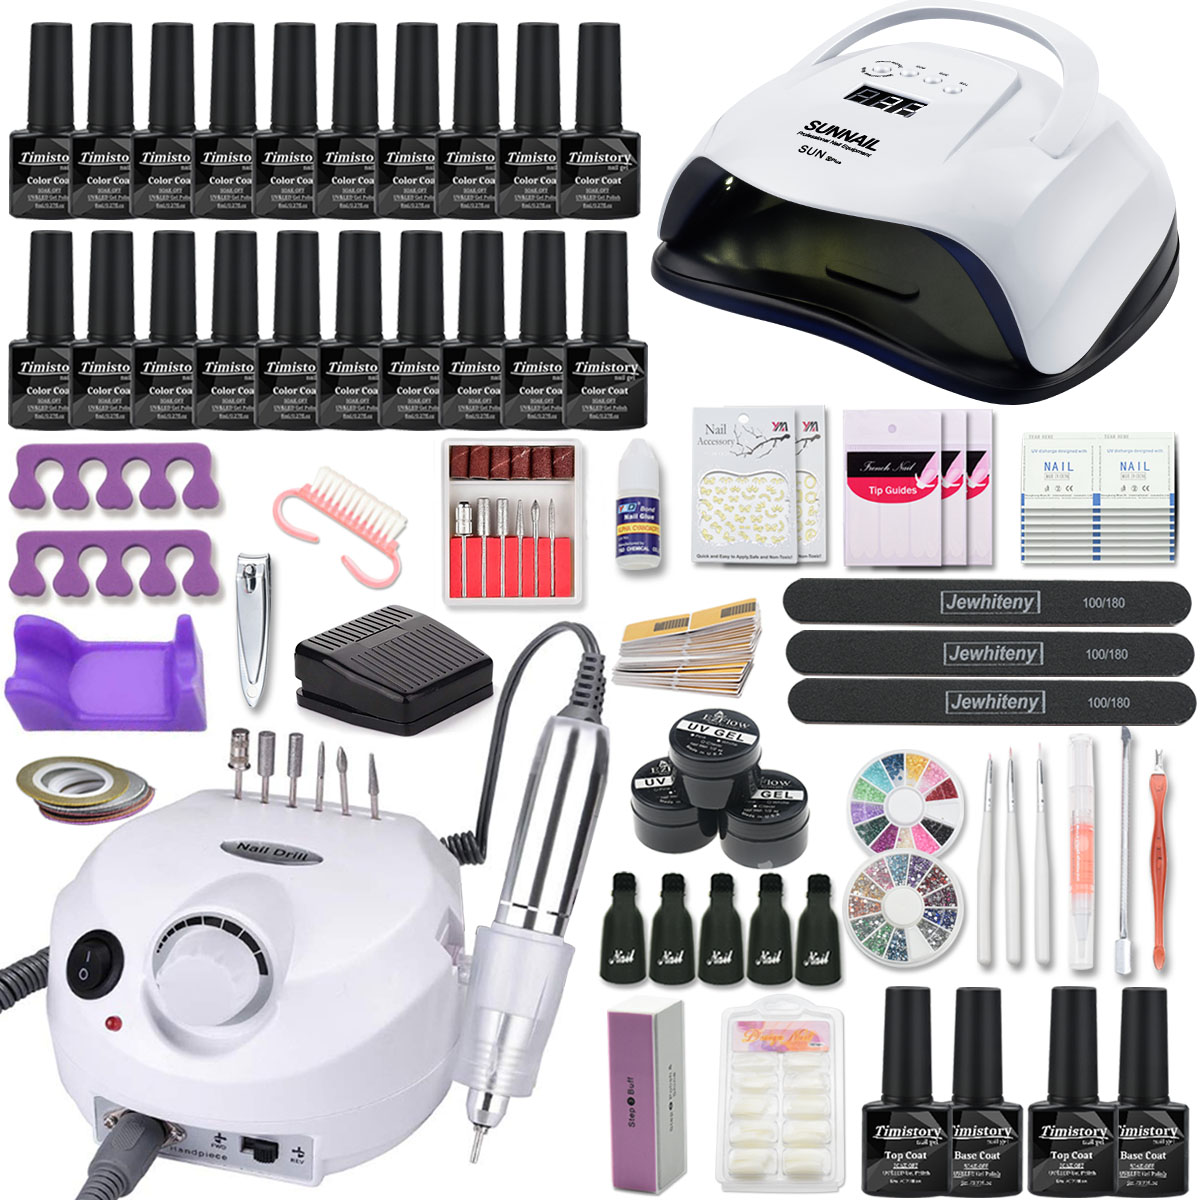 Manicure Set Nail Kit 120/80/54W UV led Lamp With 20PCS Gel Varnish Set Electric Nail Drill Manicure Tool Kit Nail Extension Kit